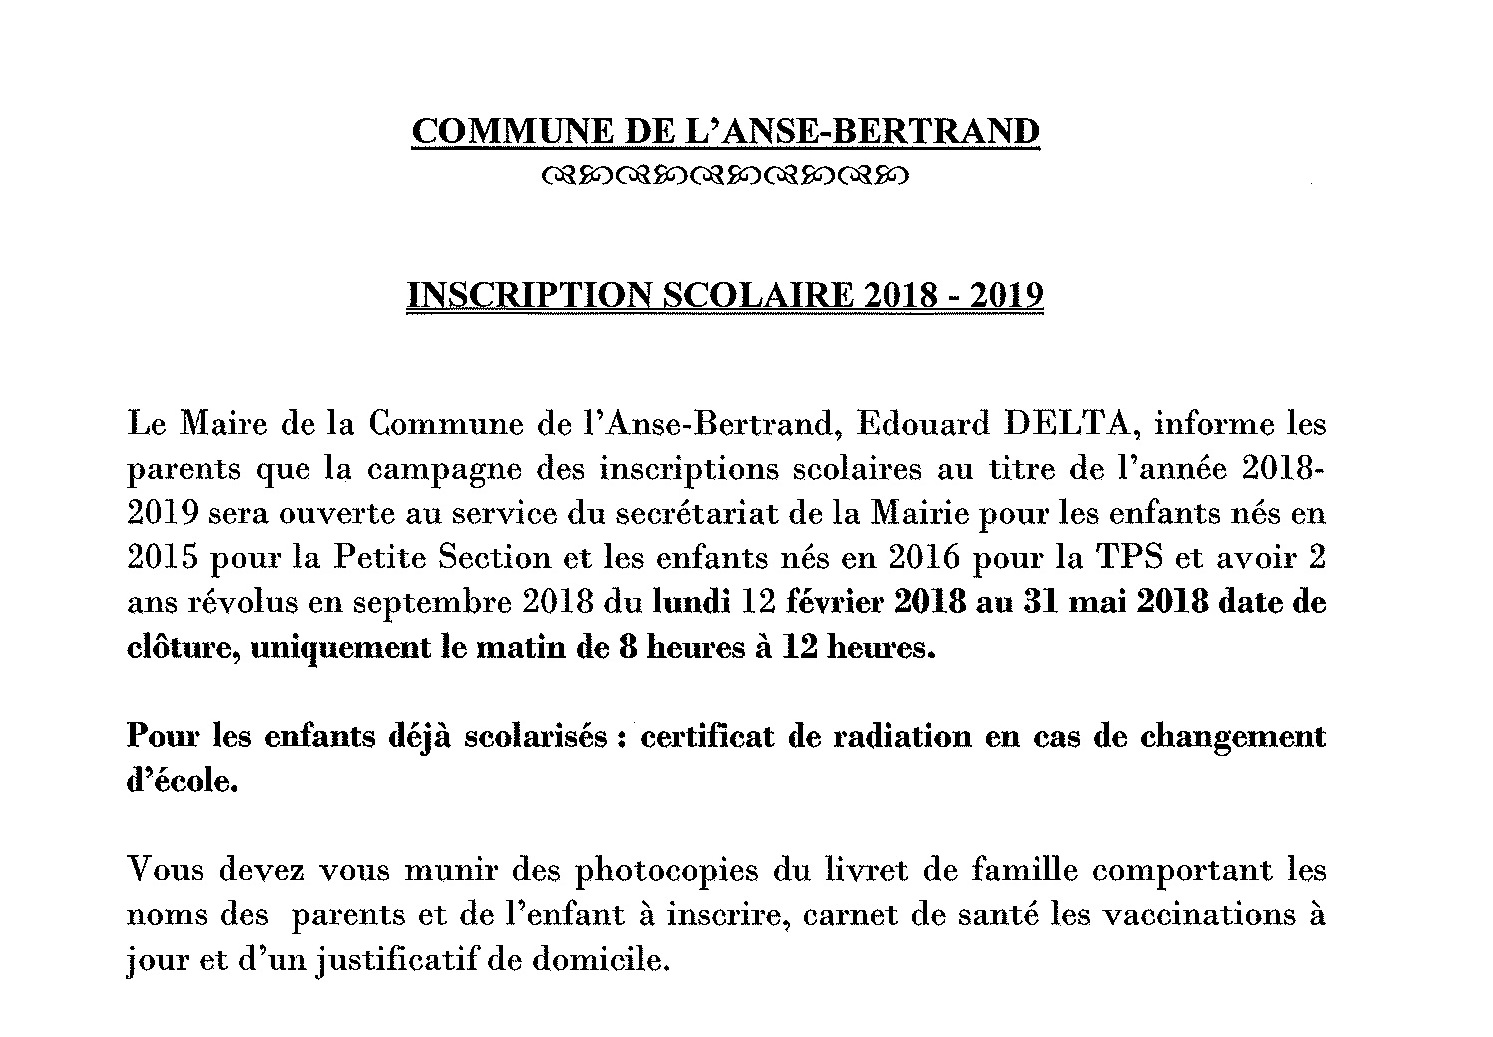 INSCRIPTION SCOLAIRE 2018/2019